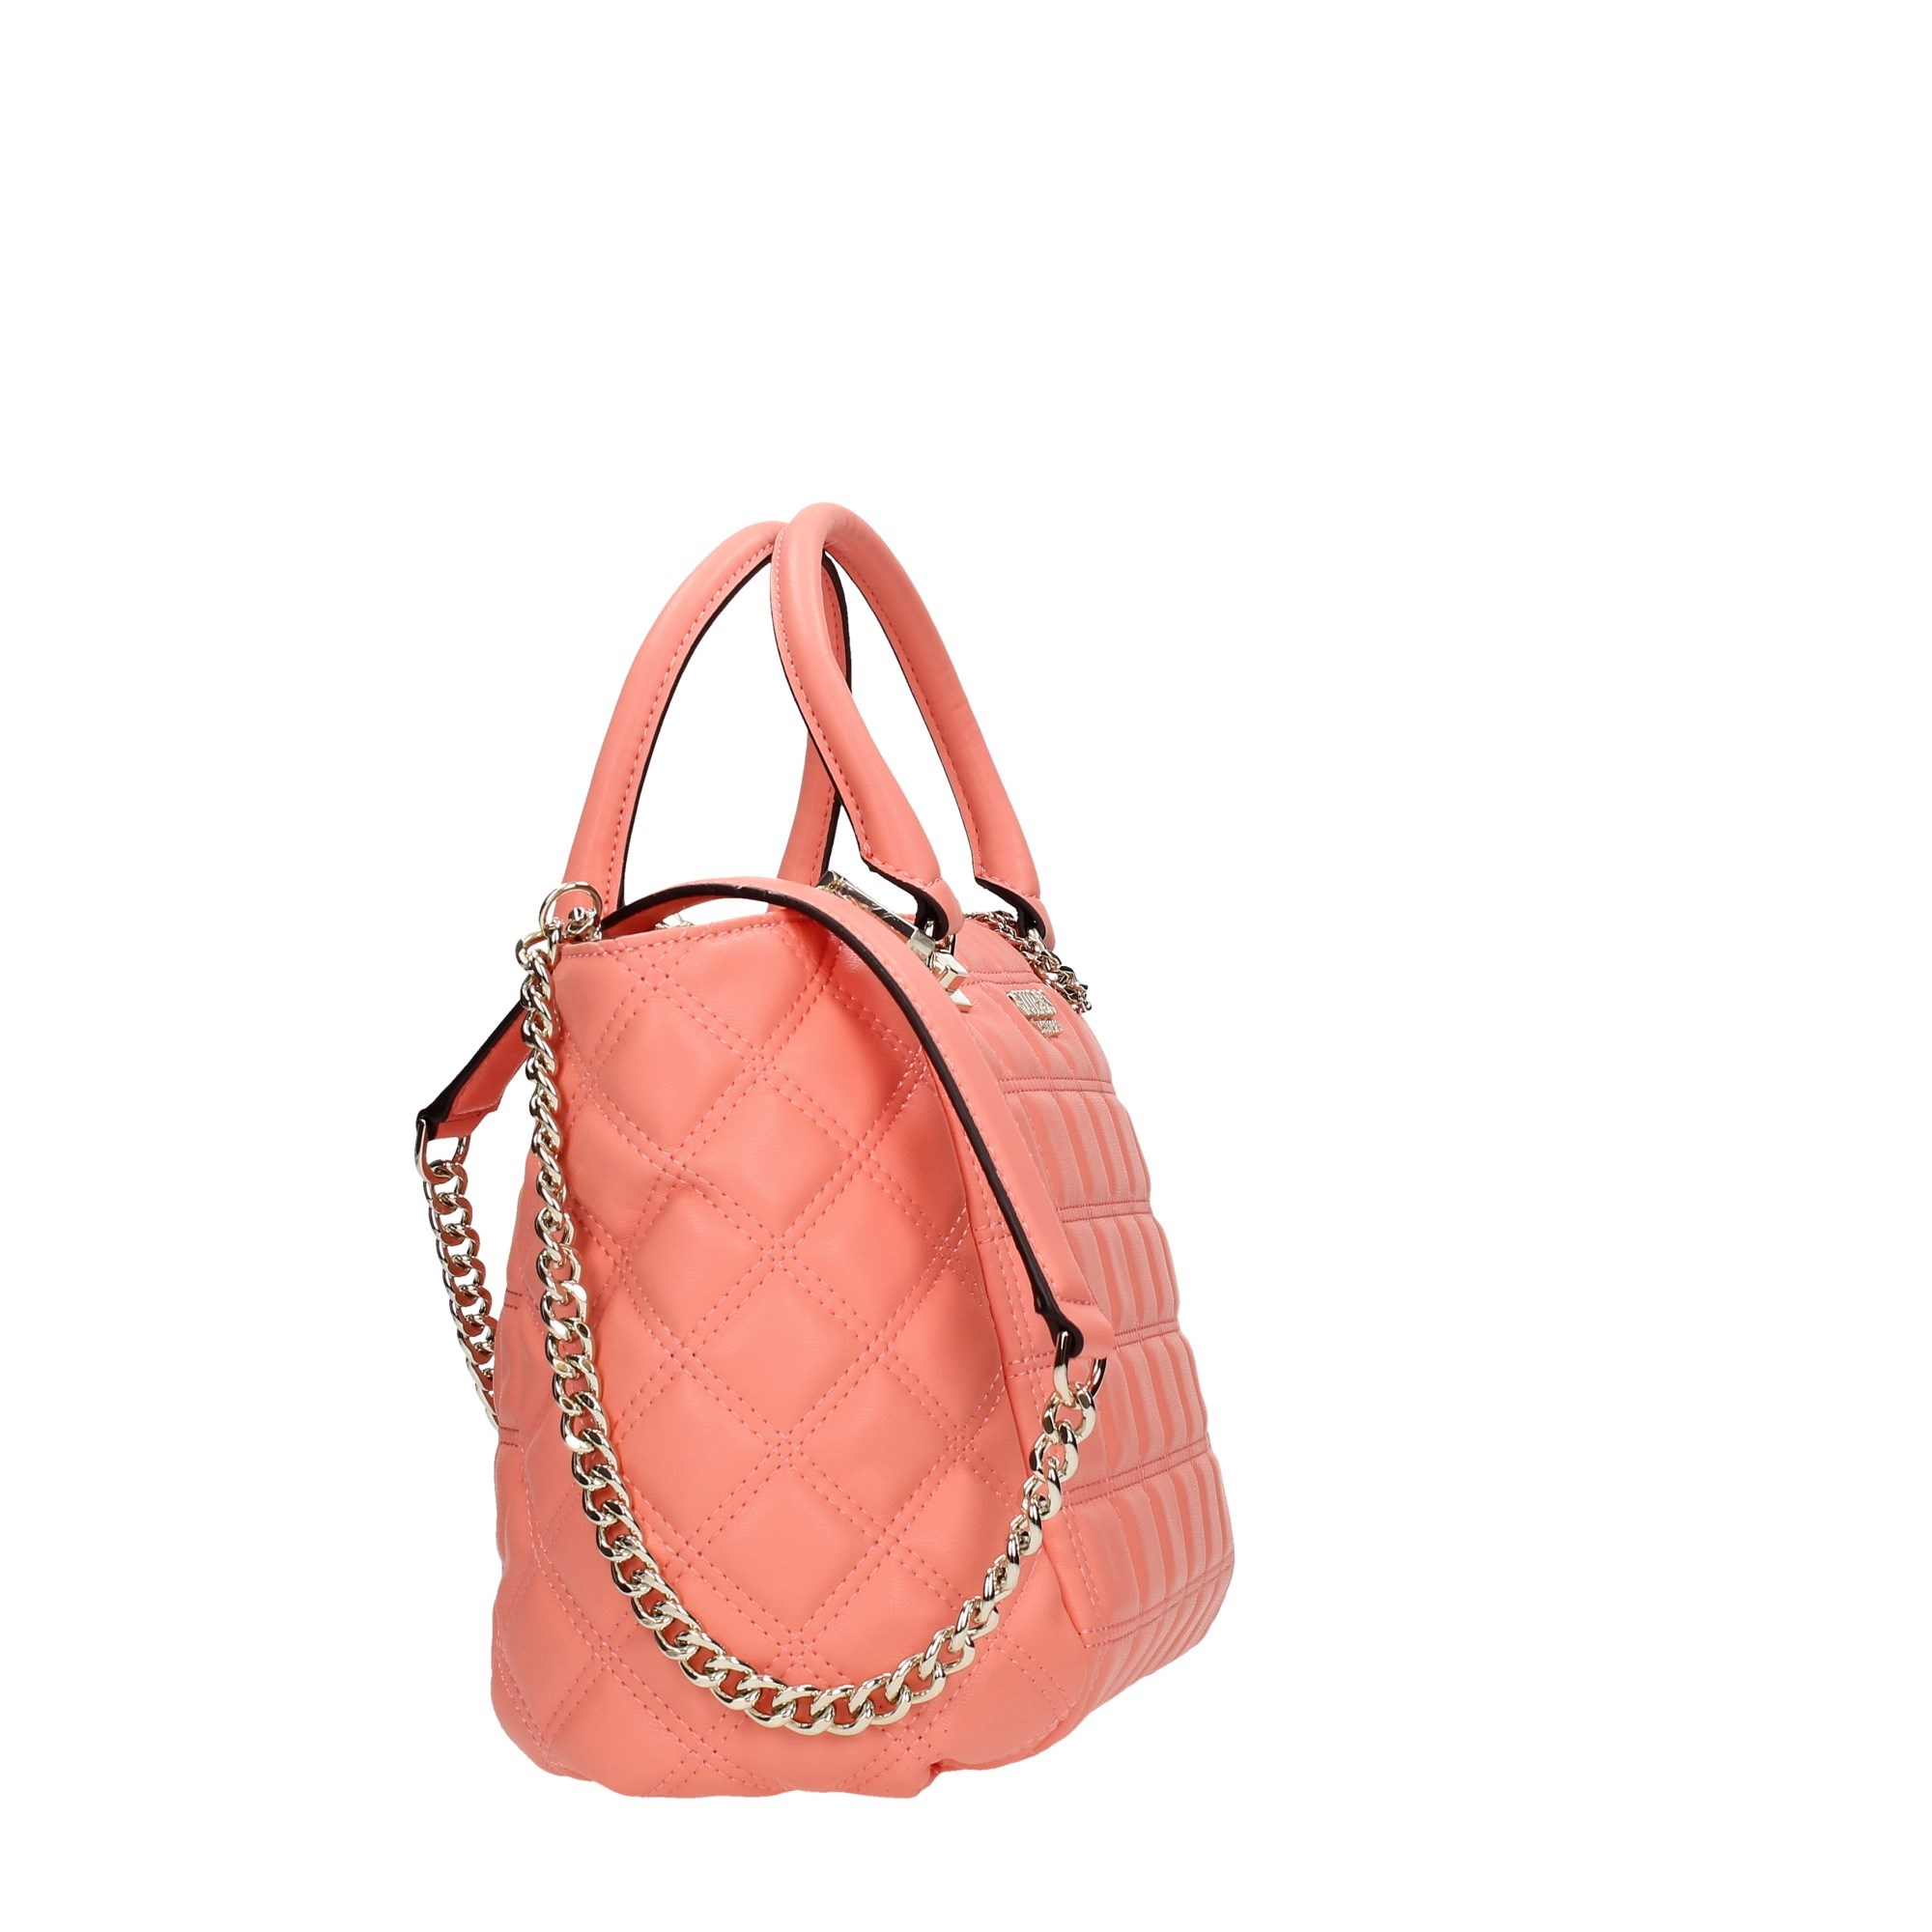 Guess Borse Accessories Women Shoulder Bags HWVG81/11060